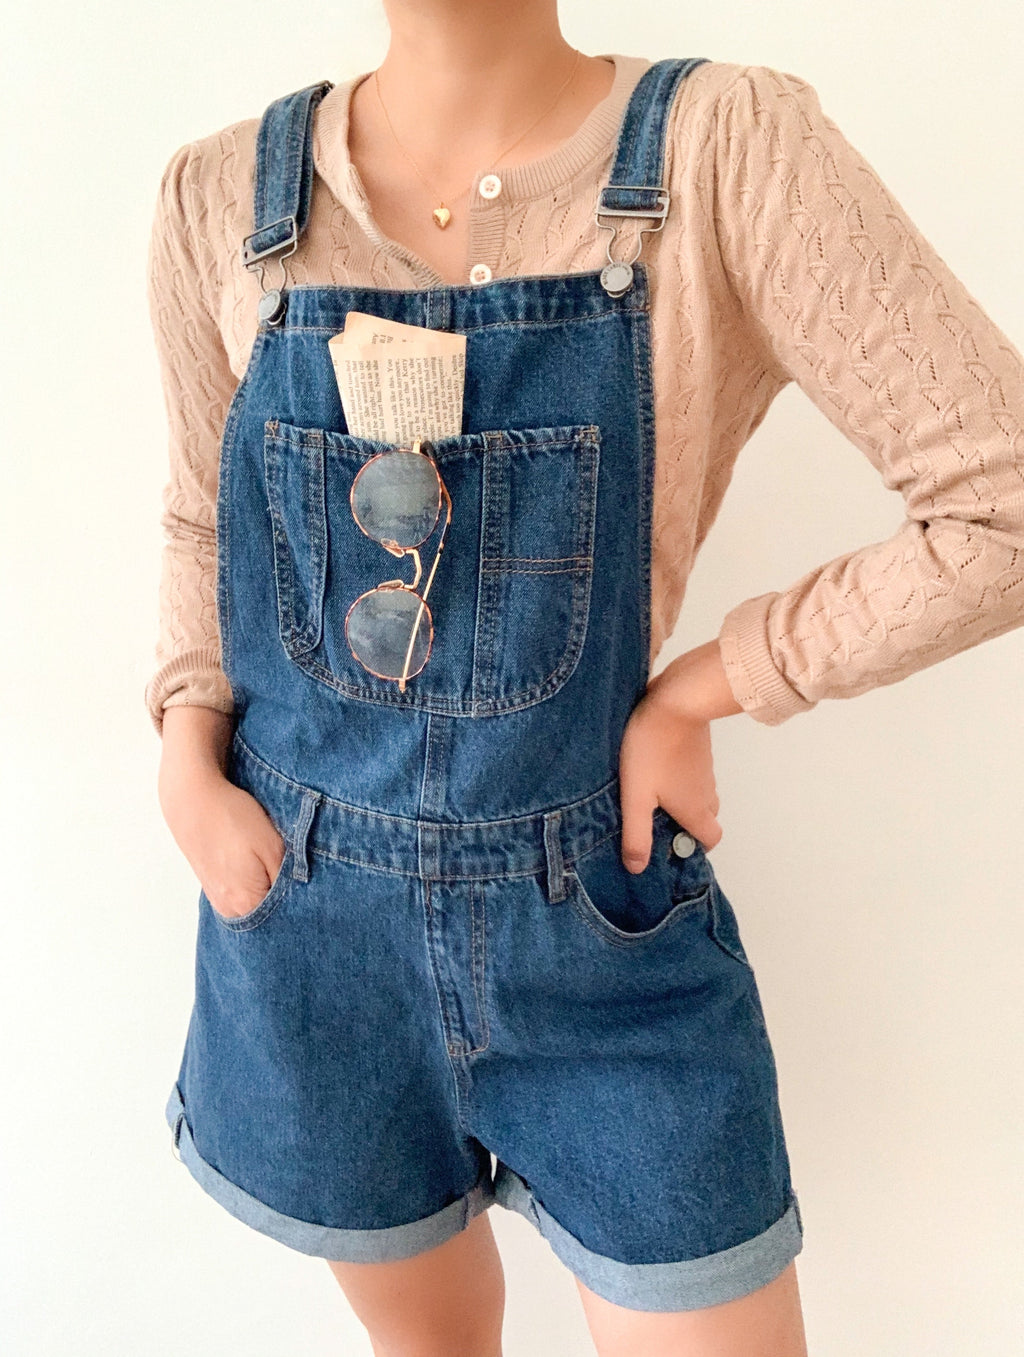 Keep falling for you overalls